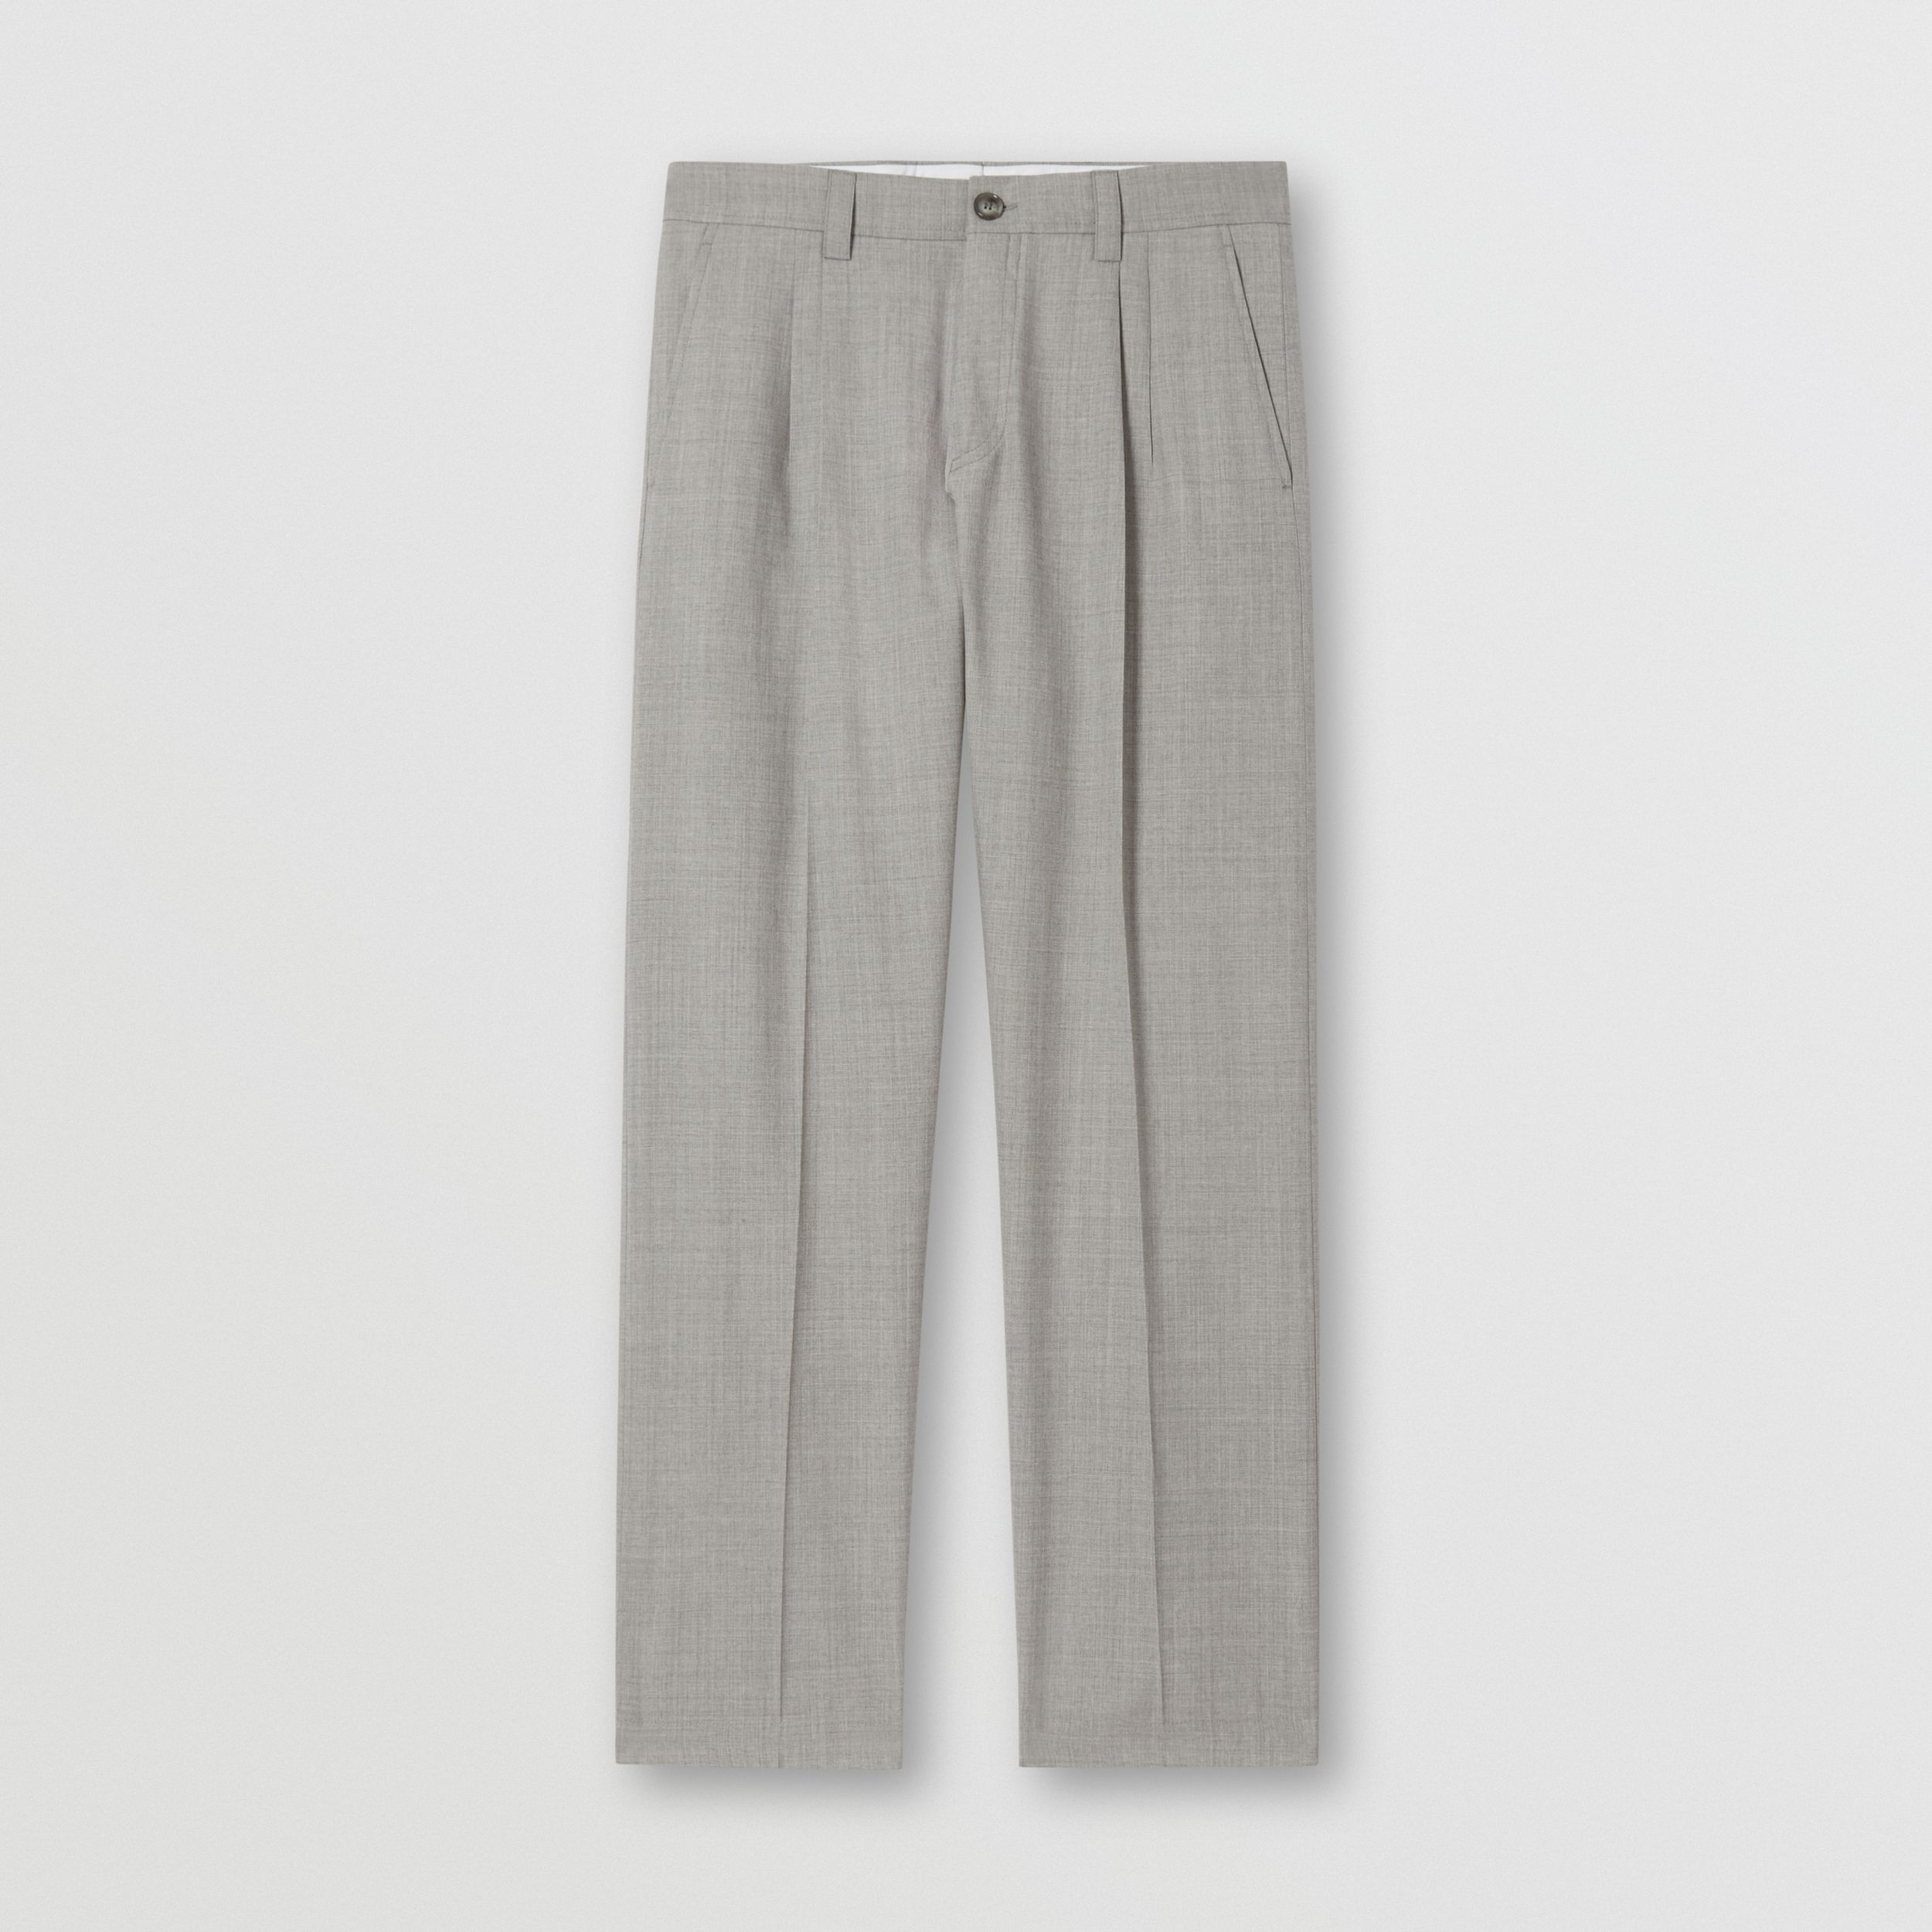 Logo Wool Jacquard Tailored Trousers in Light Pebble Grey - Men | Burberry Hong Kong S.A.R. - 4